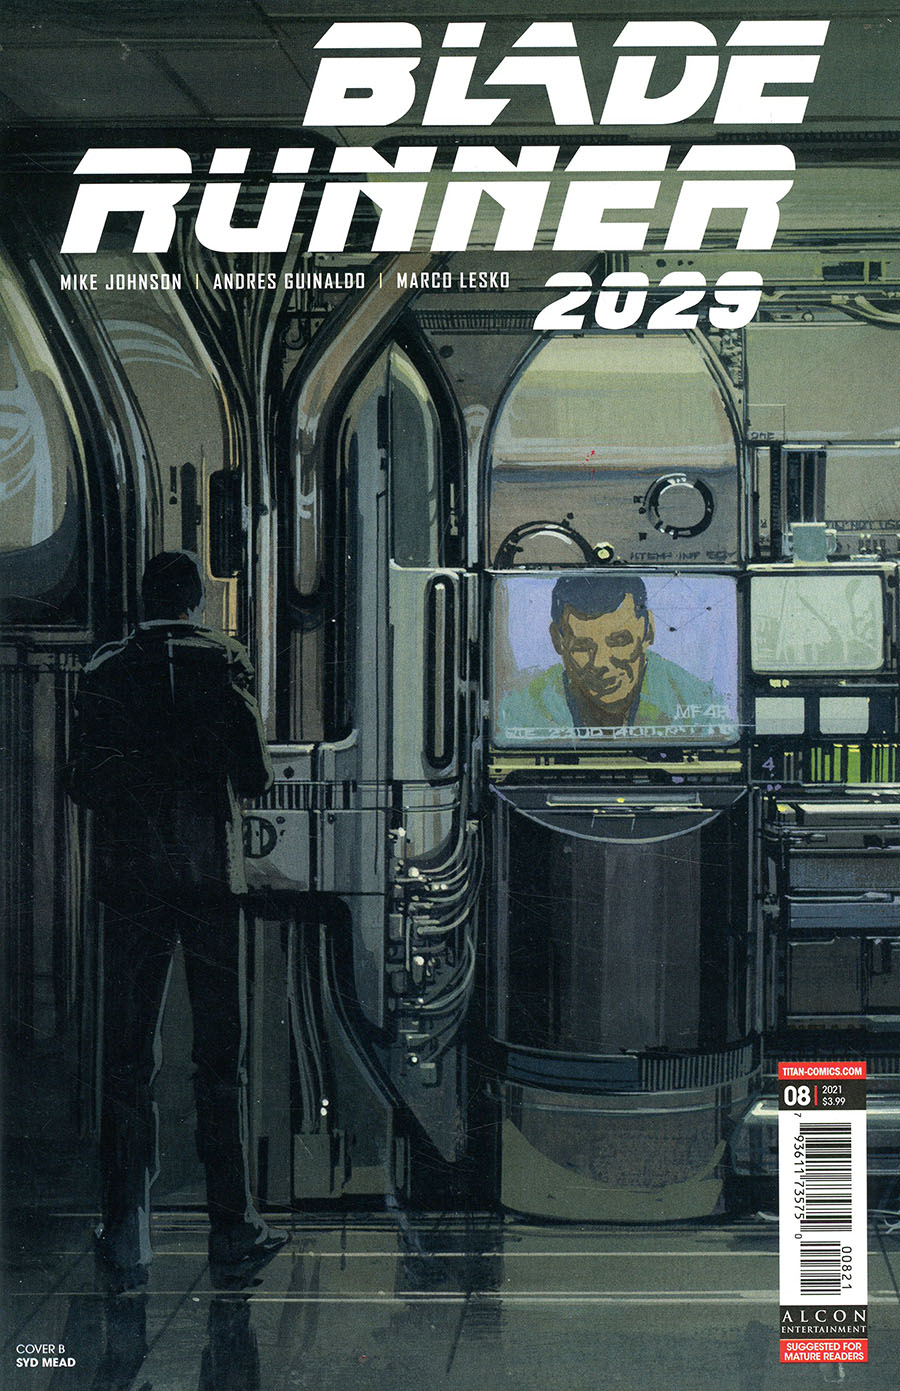 Blade Runner 2029 #8 Cover B Variant Syd Mead Cover